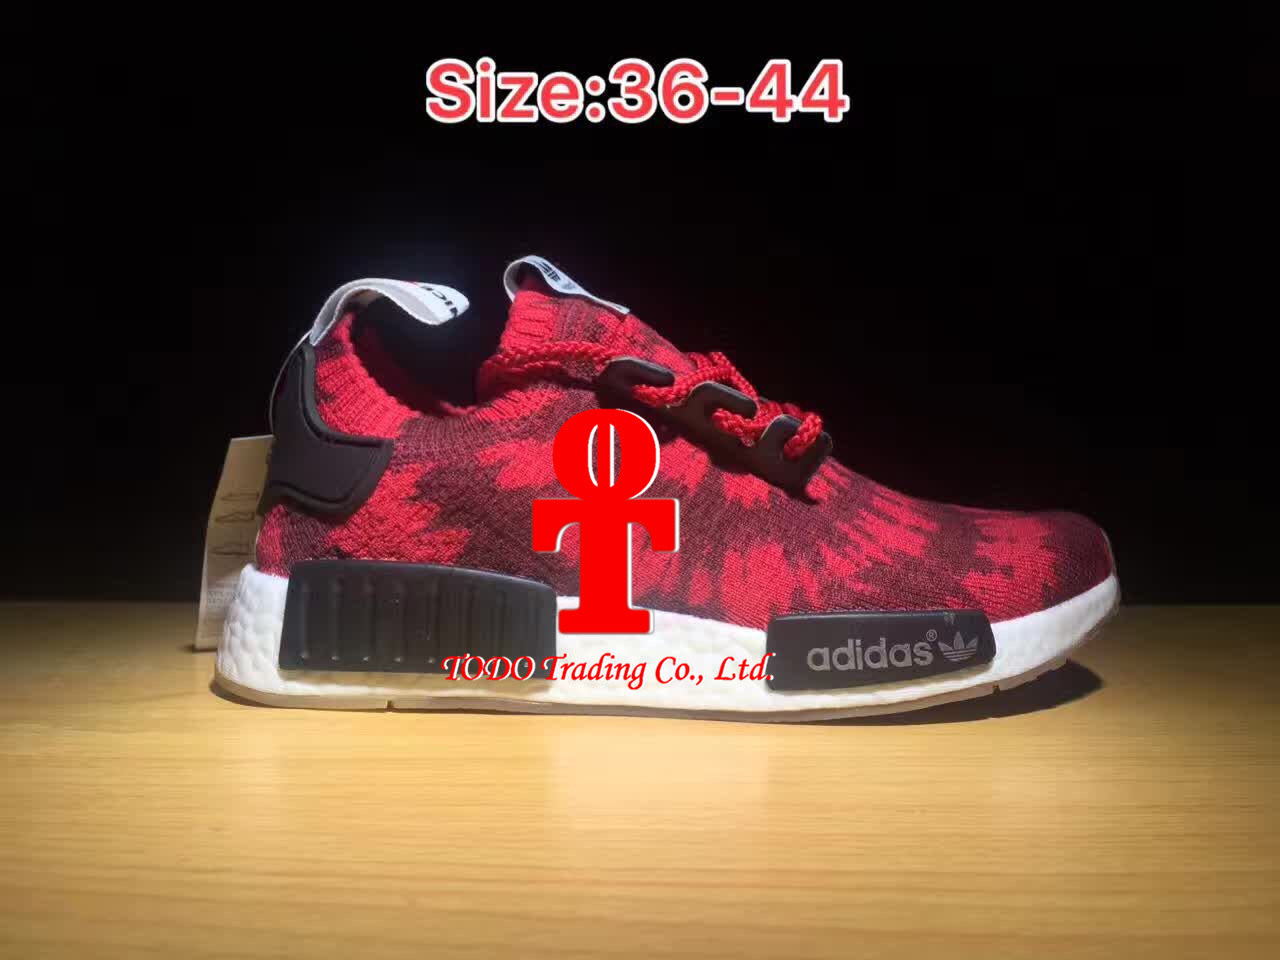 c8bd67f376a6e ... official store china addas nmd runner pk the first red clover blue  running shoes for men